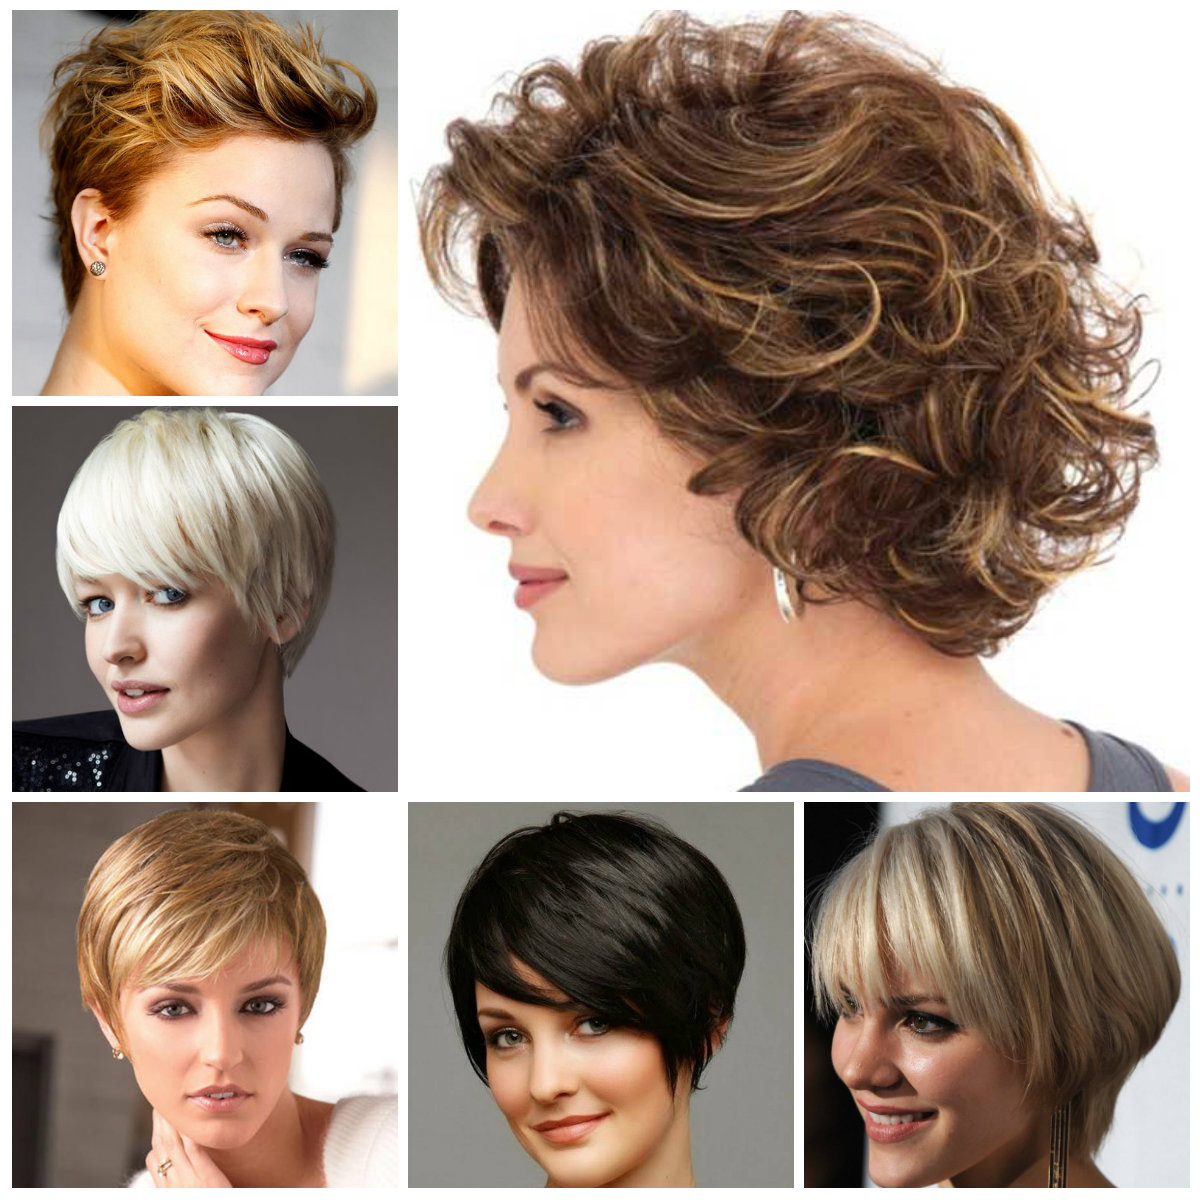 Short Layered Hairstyle Ideas For 2019 | Hairstyles For Women 2019 In Layered Haircuts For Short Curly Hair (View 6 of 25)